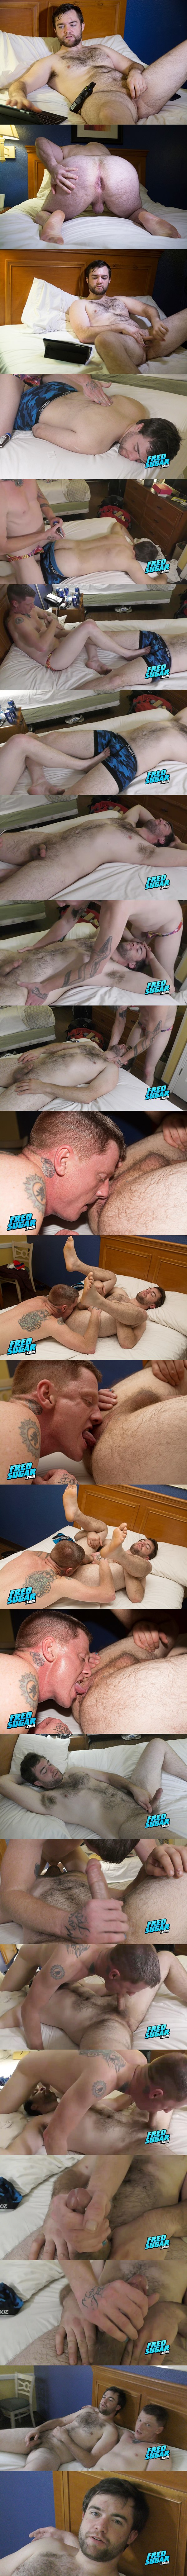 Fredsugar - Tattooed master Deep Tilmil massages fuzzy straight muscle bear Buddy Cedarwood's body, worships his bare feet and sucks his cock before Deep jerks Buddy off 02